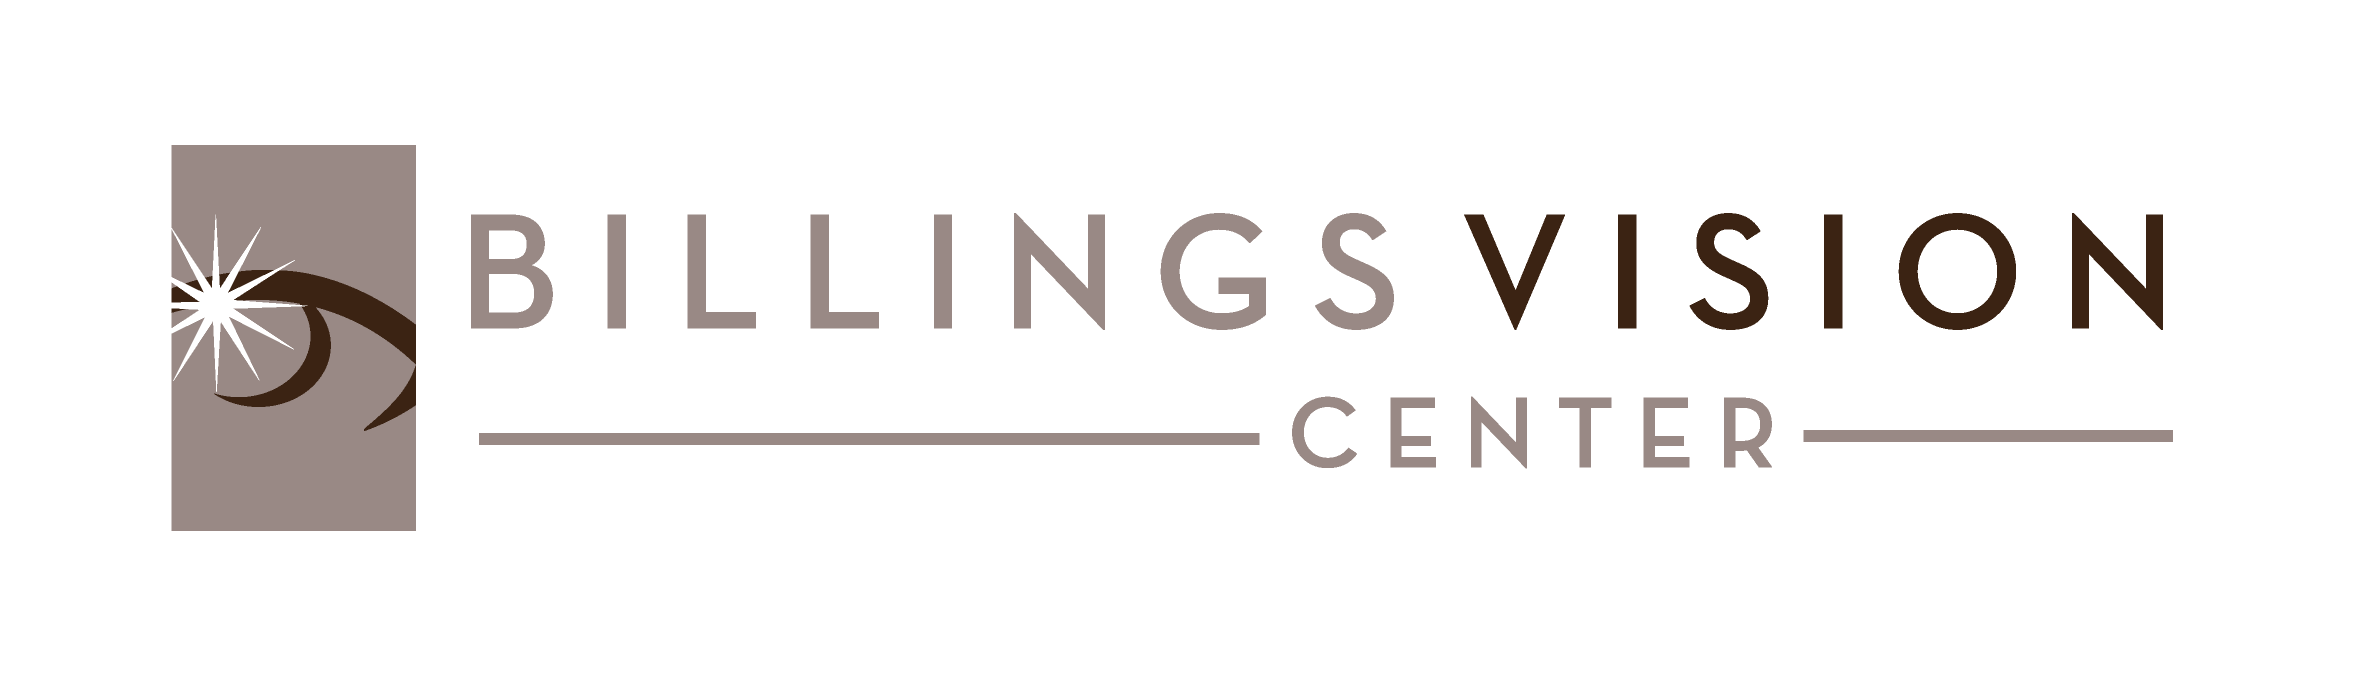 Billings Vision Center